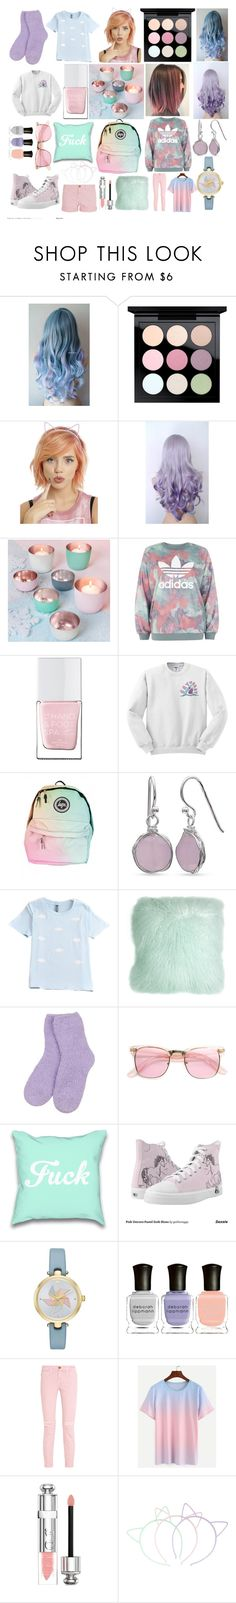 Pastel by rosie-orde on Polyvore featuring adidas, Current/Elliott, Kate Spade, Belk Silverworks, ZeroUV, Christian Dior, MAC Cosmetics, Deborah Lippmann, The Hand & Foot Spa and Pillow Decor